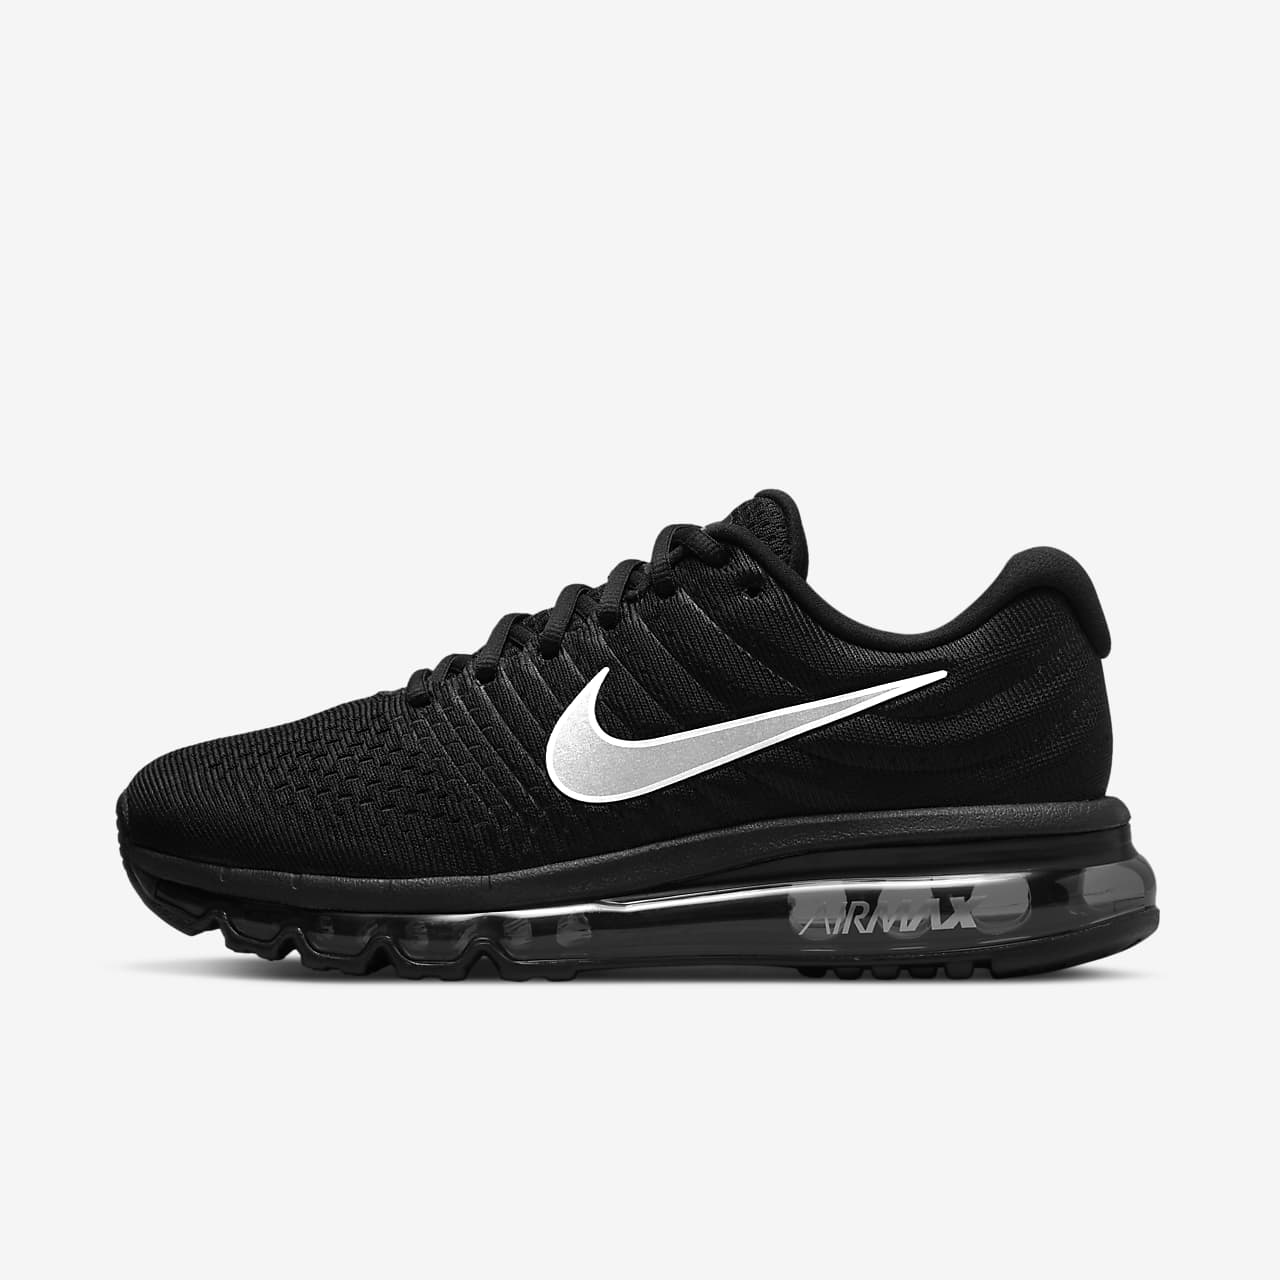 48654985222 Nike Air Max 2017 Women s Shoe. Nike.com CA